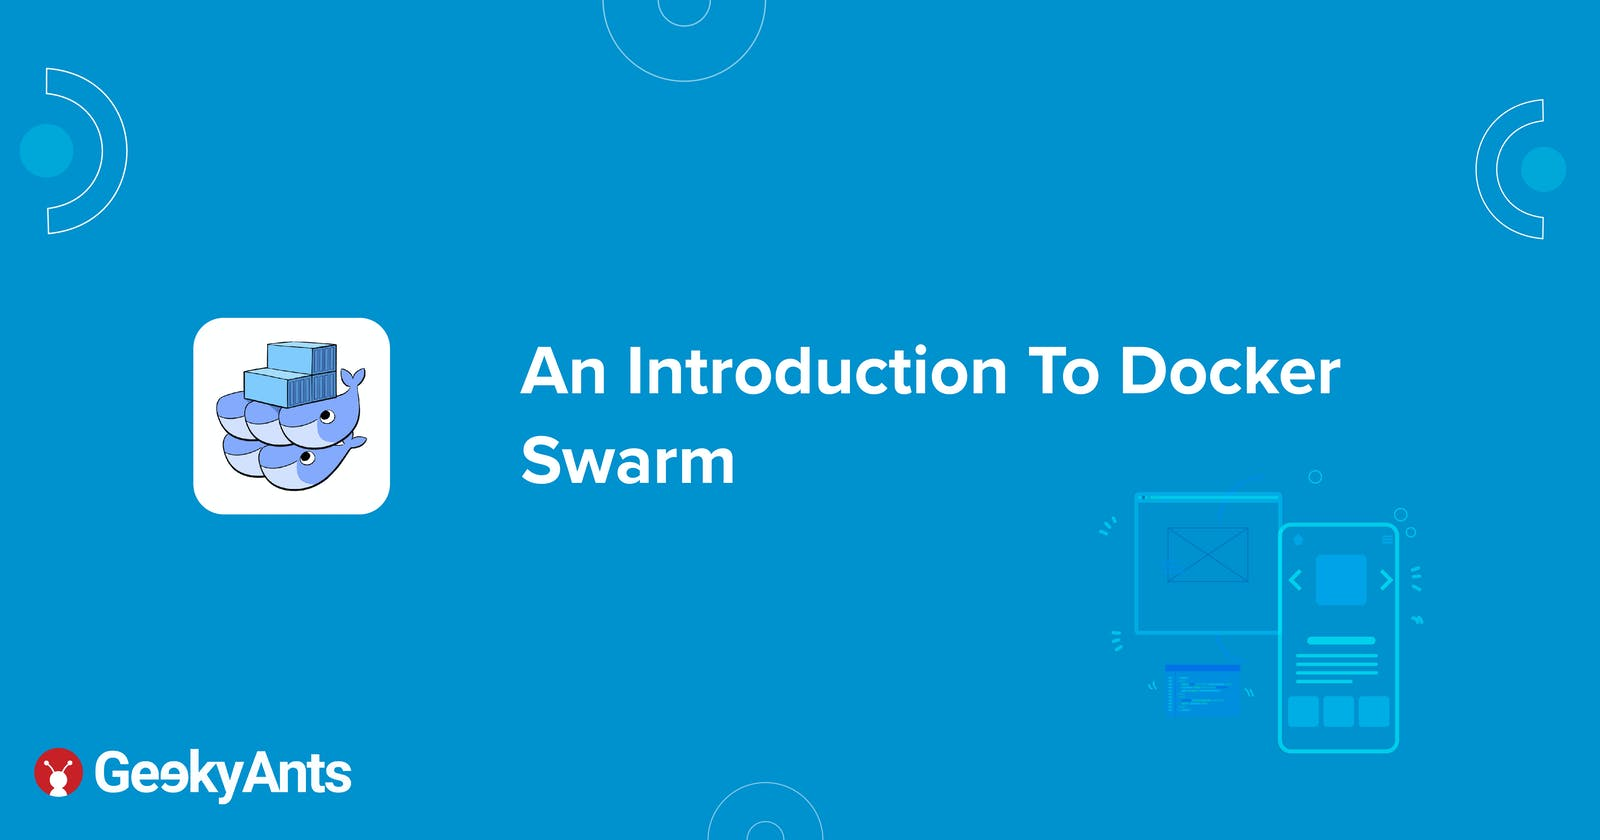 An Introduction To Docker Swarm